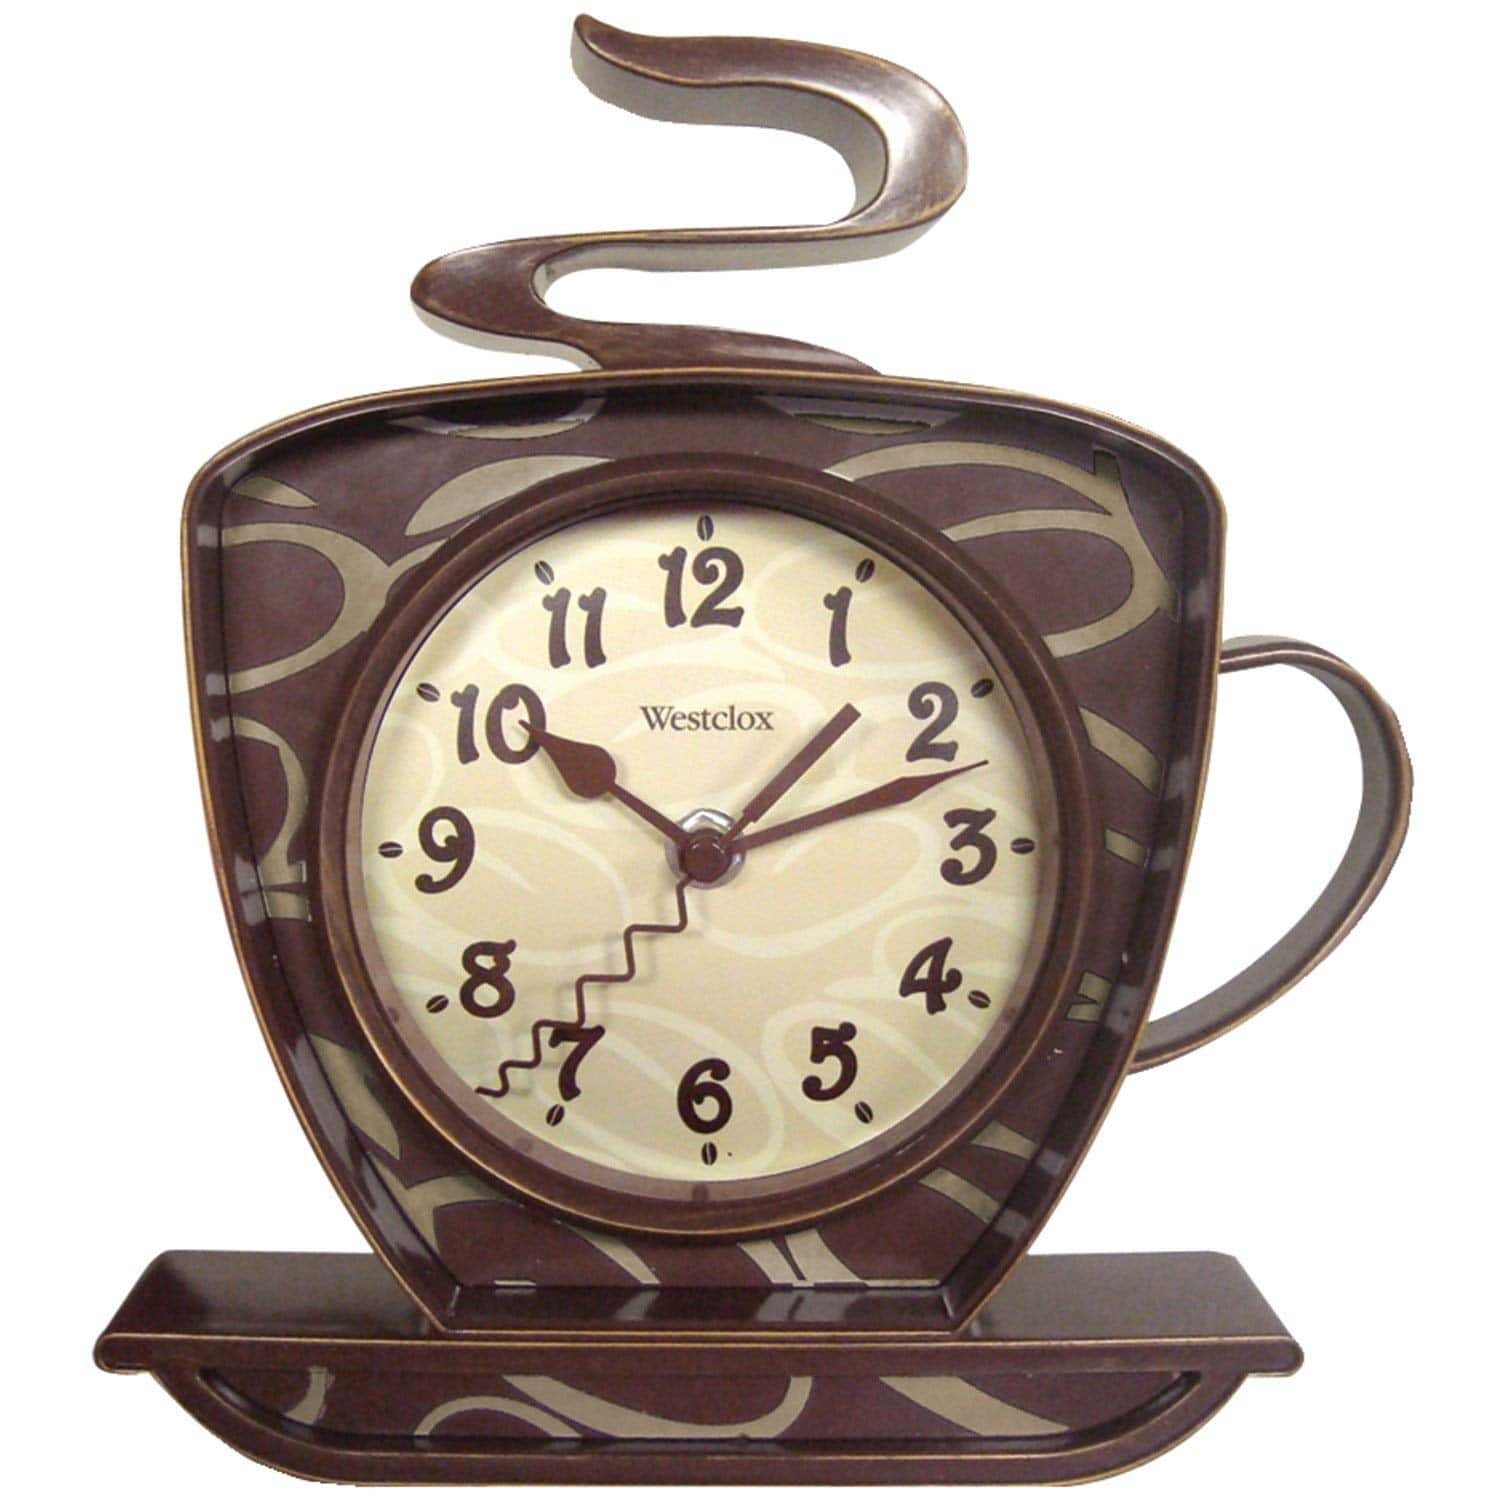 Westclox Coffee Mug Wall Clock, $4.59 at Amazon/Target/Walmart